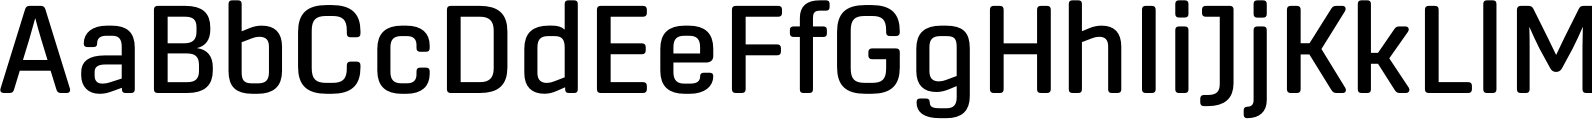 Center Medium Font